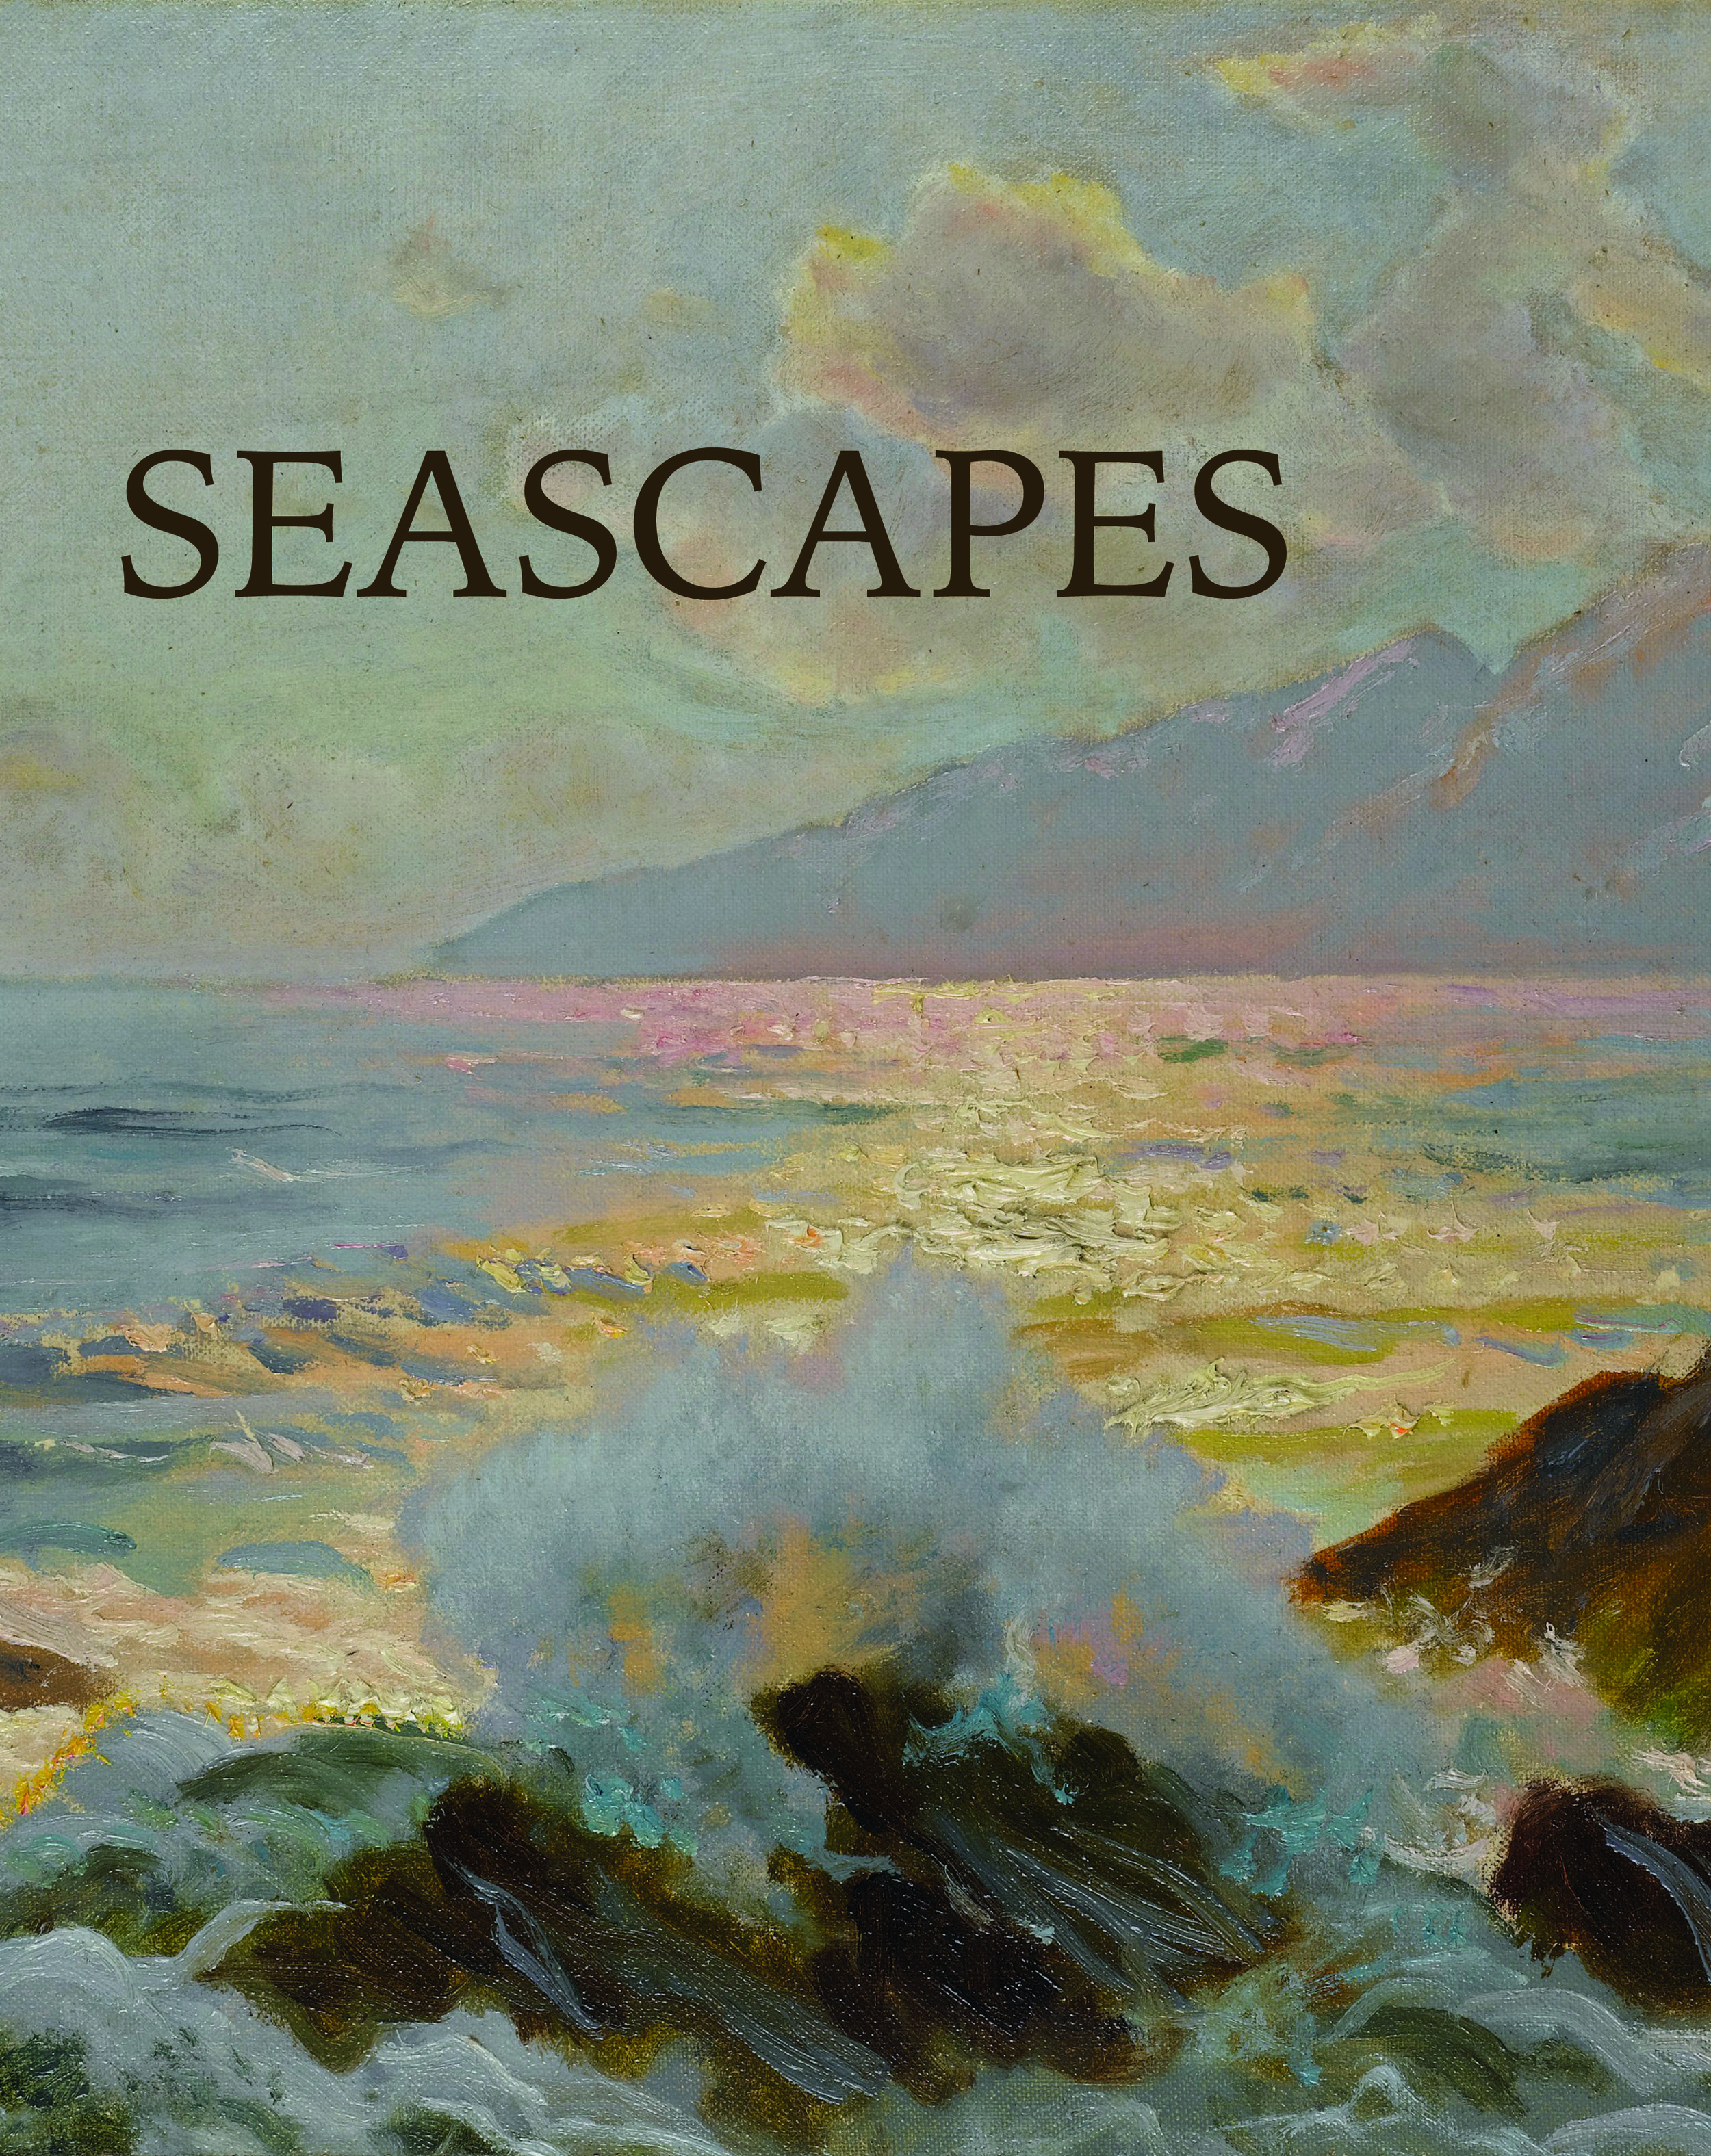 Seascapes new cover.jpg